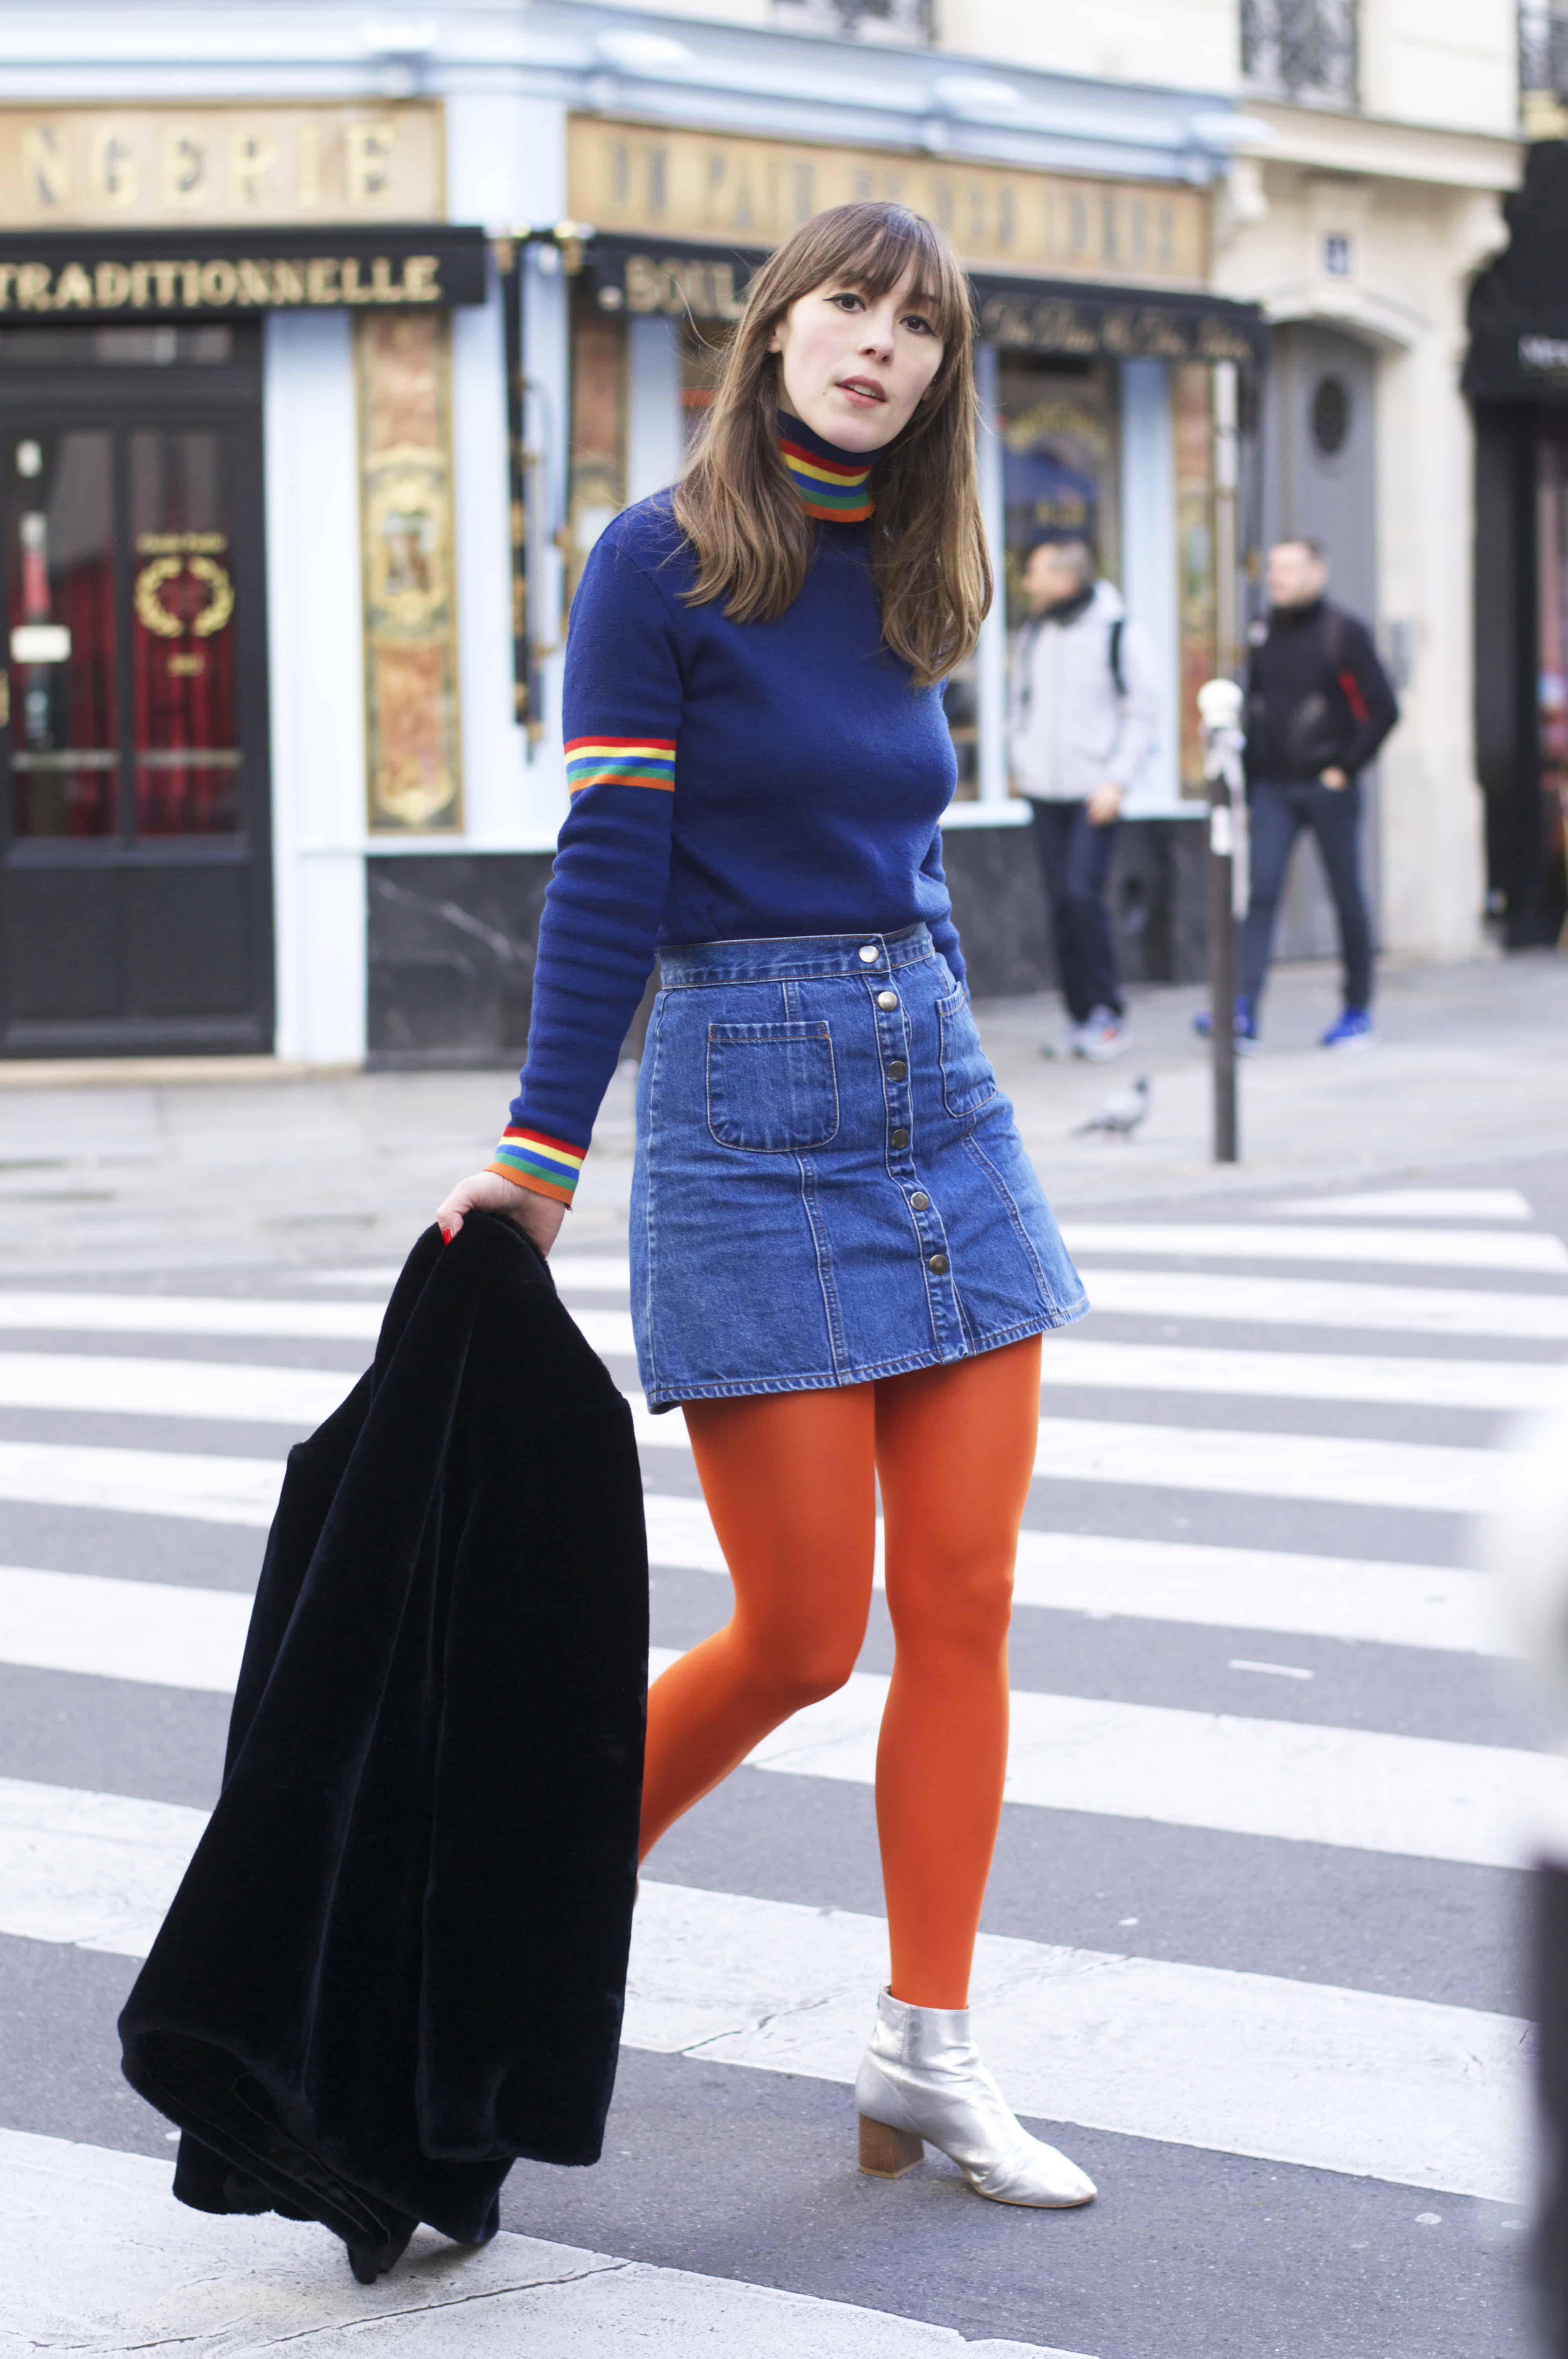 Wearing bold orange tights and a rainbow knit in Paris